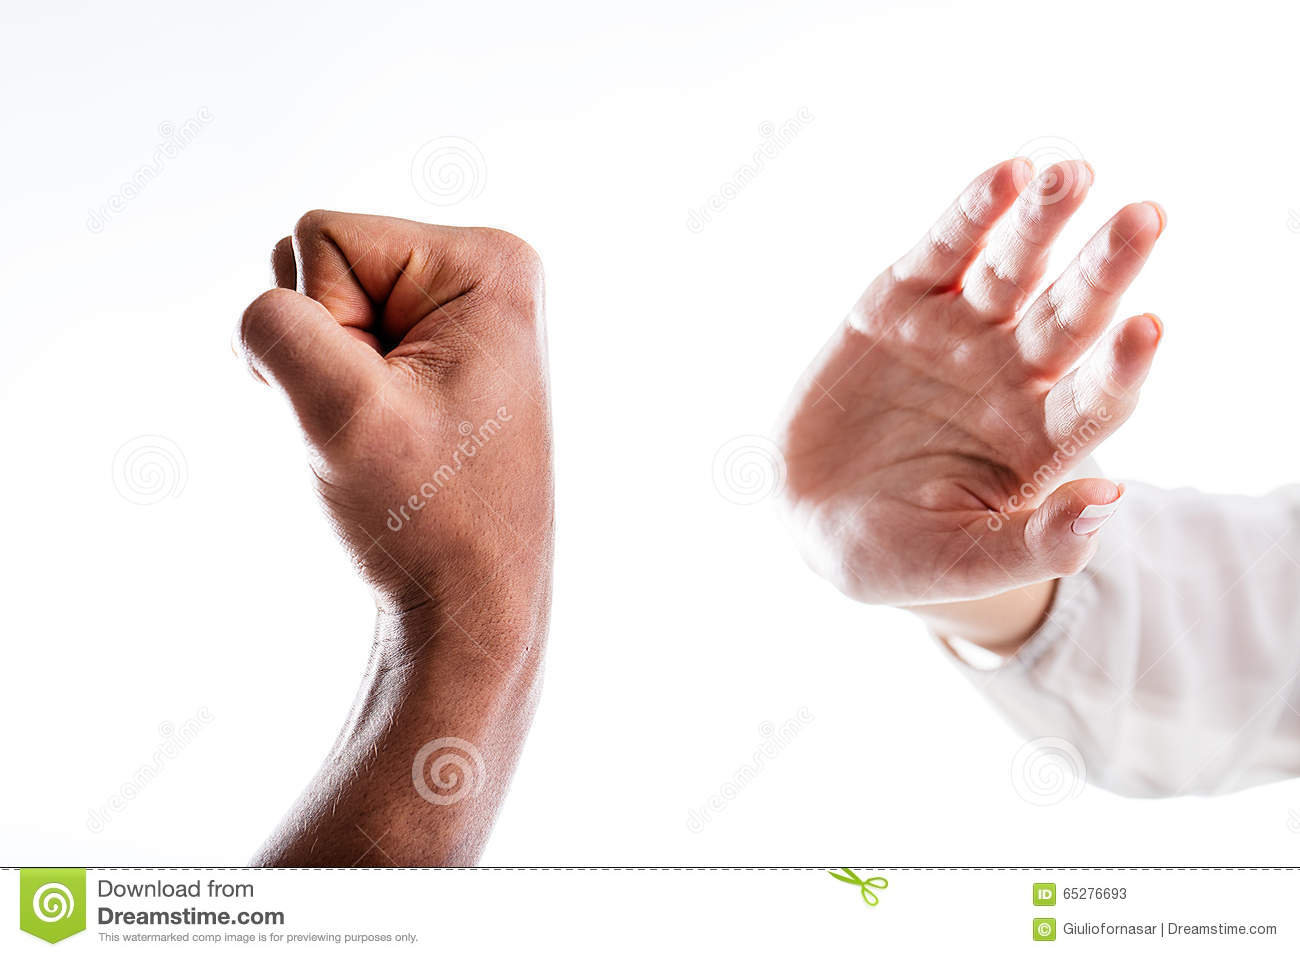 A hand defends from the punch that menaces it